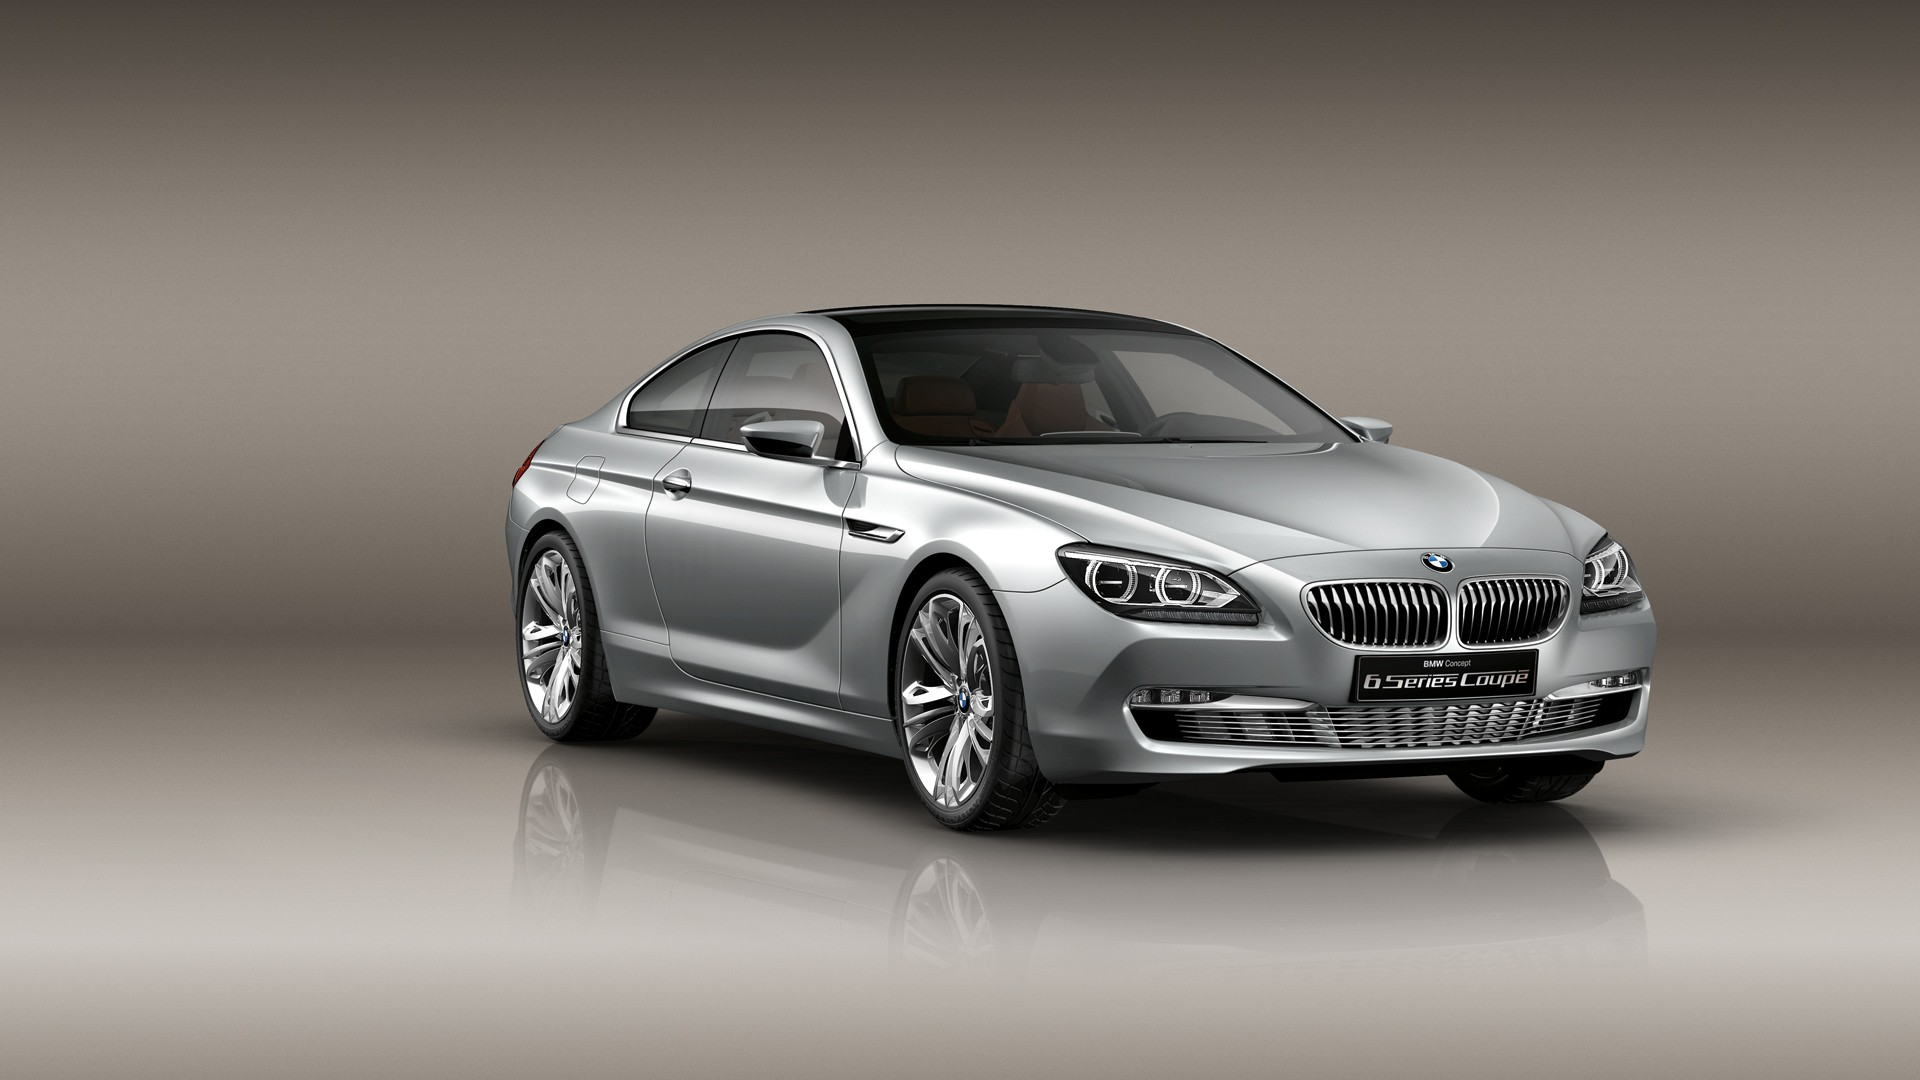 2017 BMW 6 Series Coupe Concept photo - 4